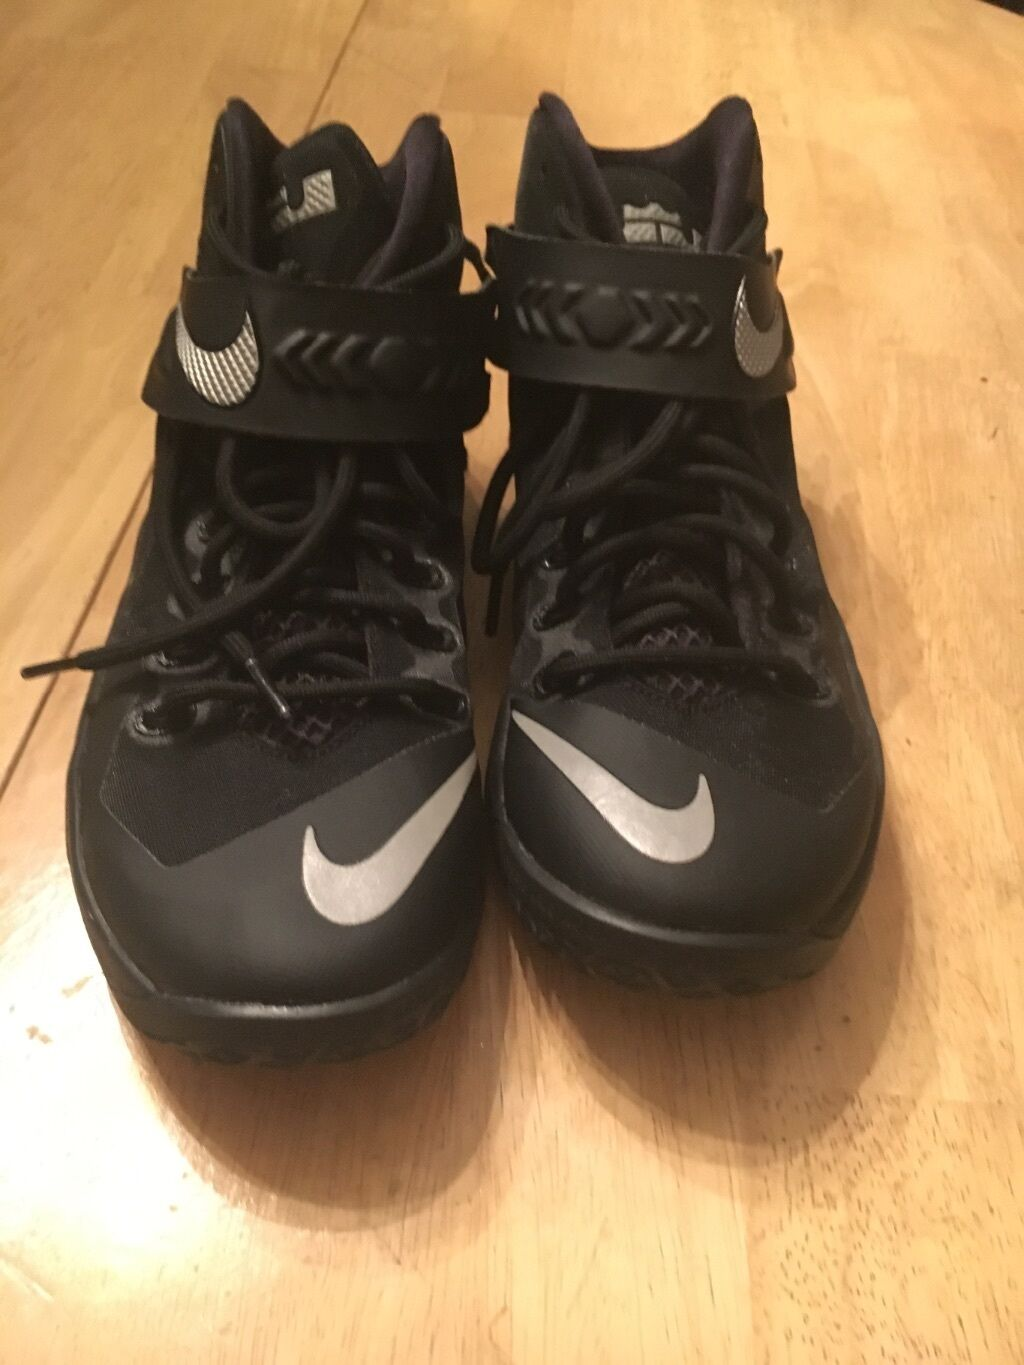 Nike Lebron soldiers Black  Cheap and fashionable